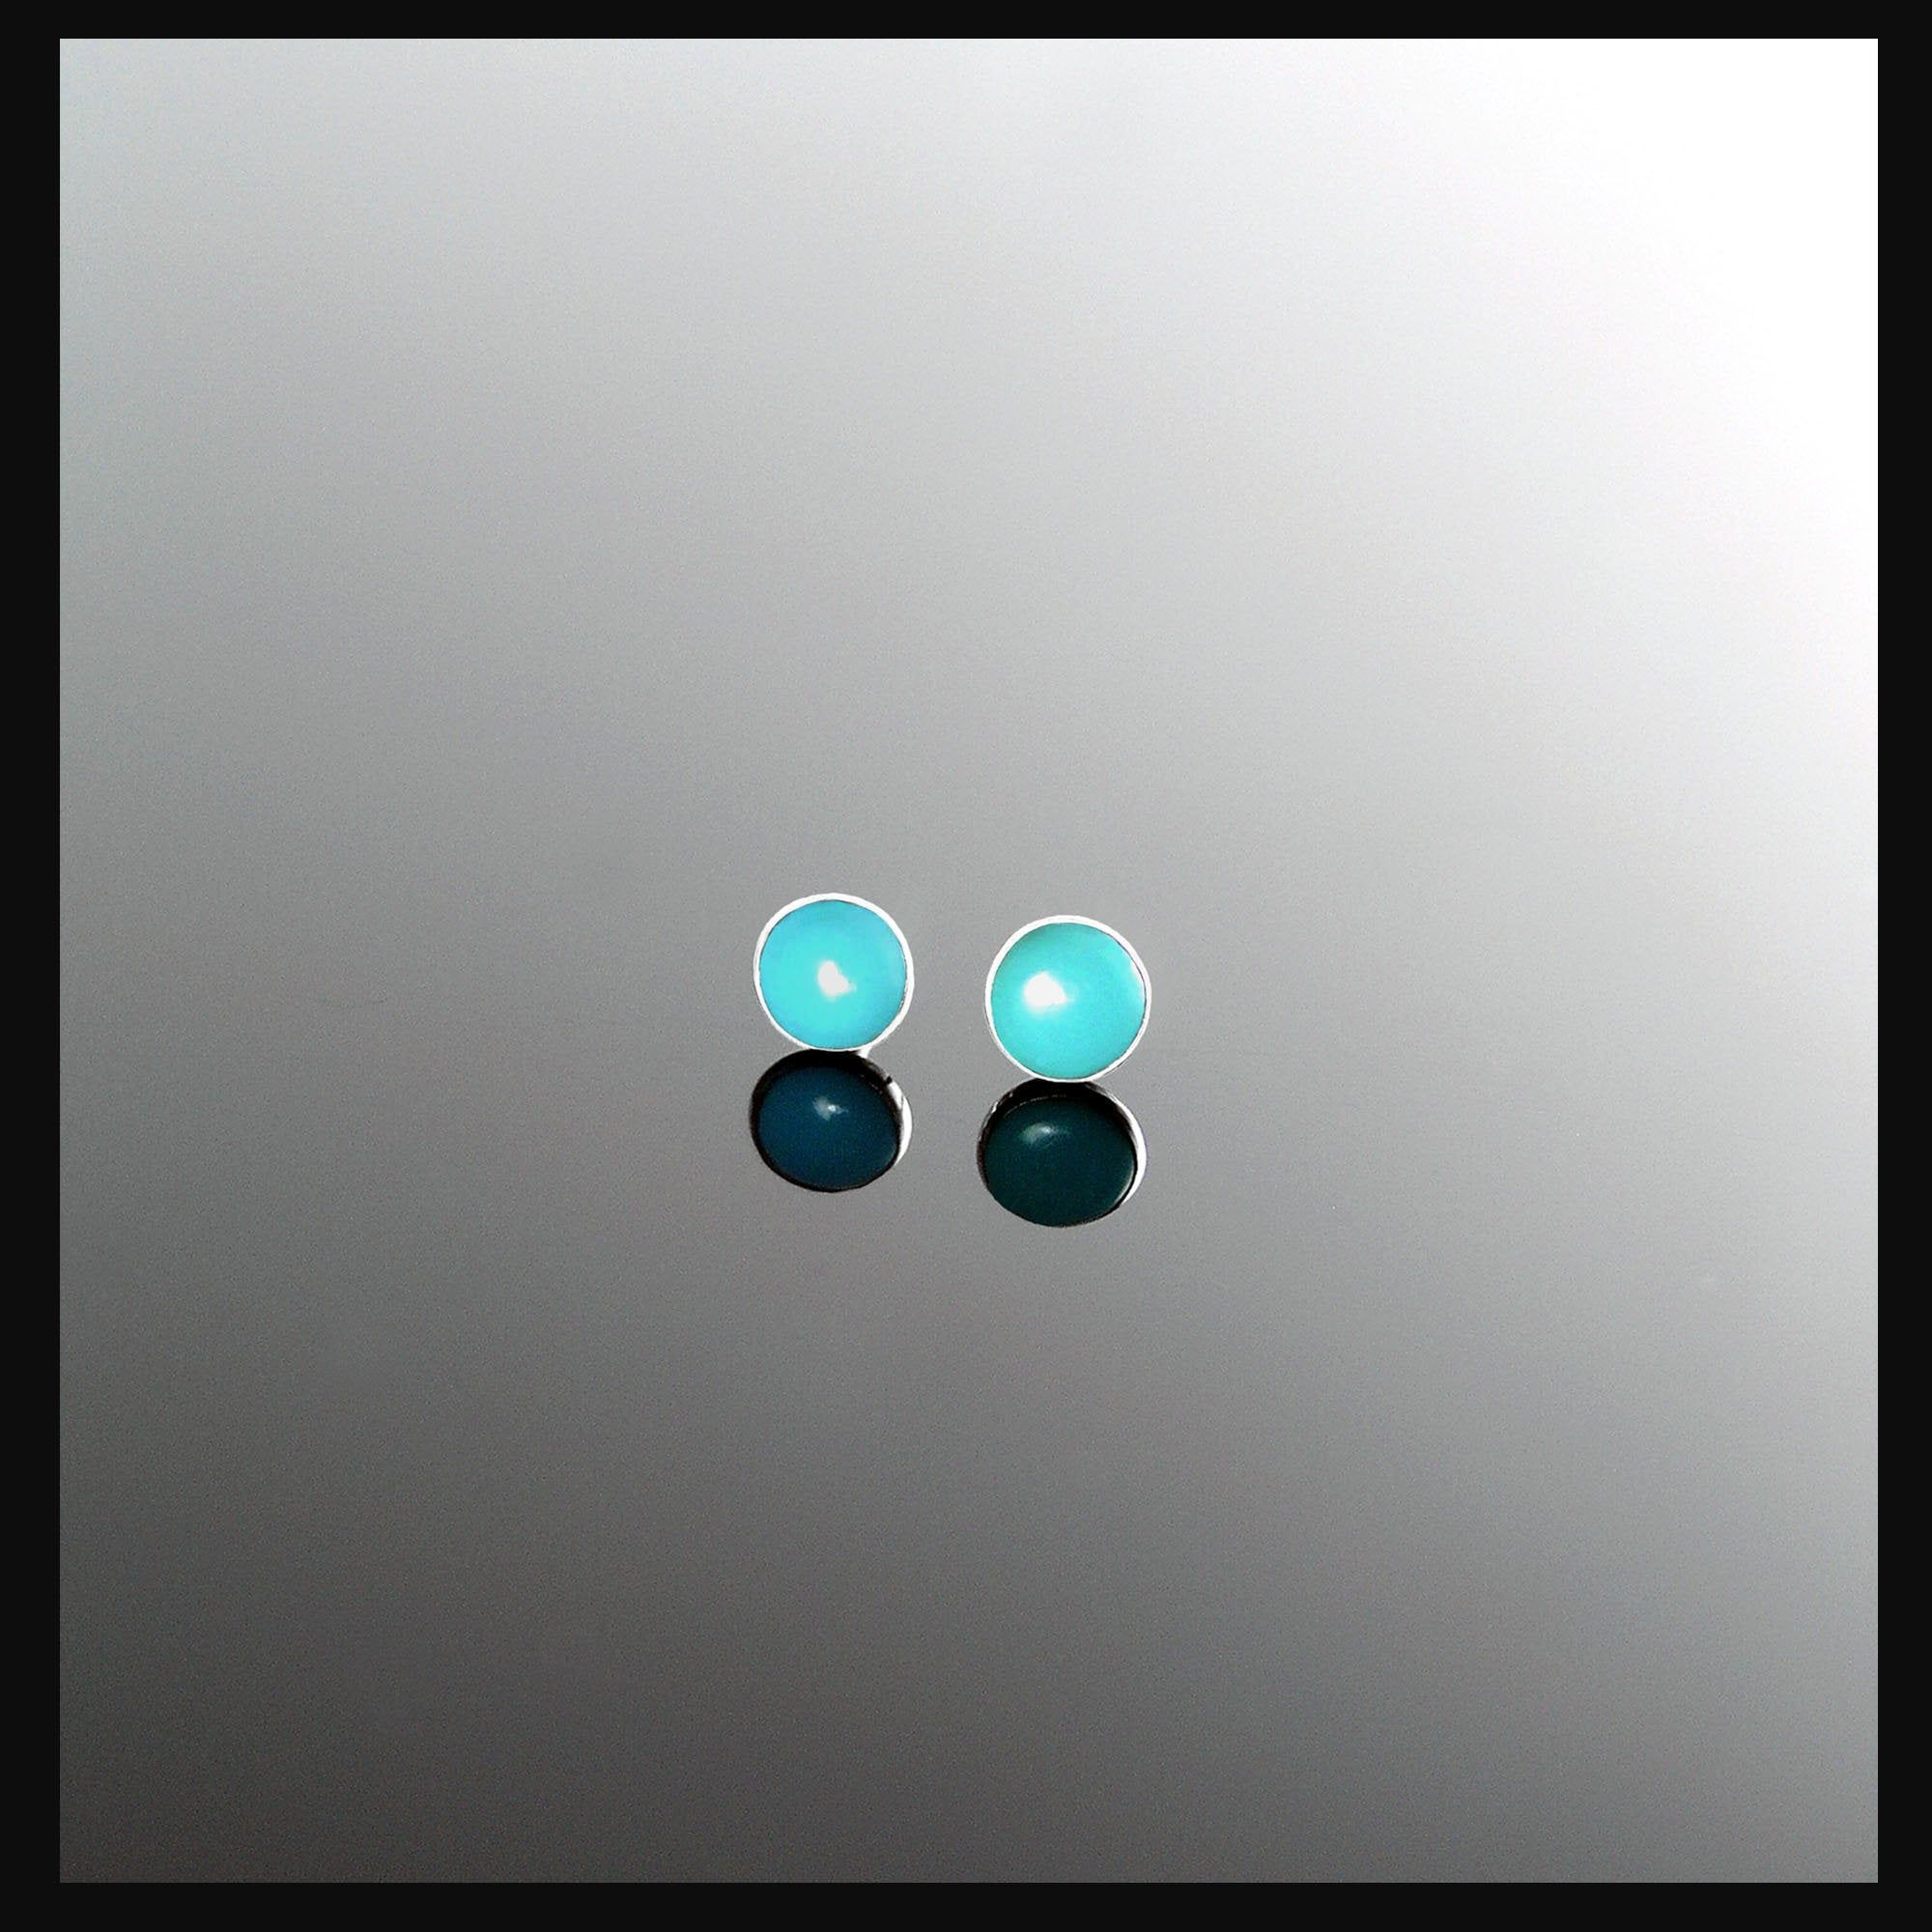 Small Posts Small Turquoise Studs Small Blue Turquoise Posts Small 5mm Sleeping Beauty Turquoise Post Earrings Sterling Silver Posts